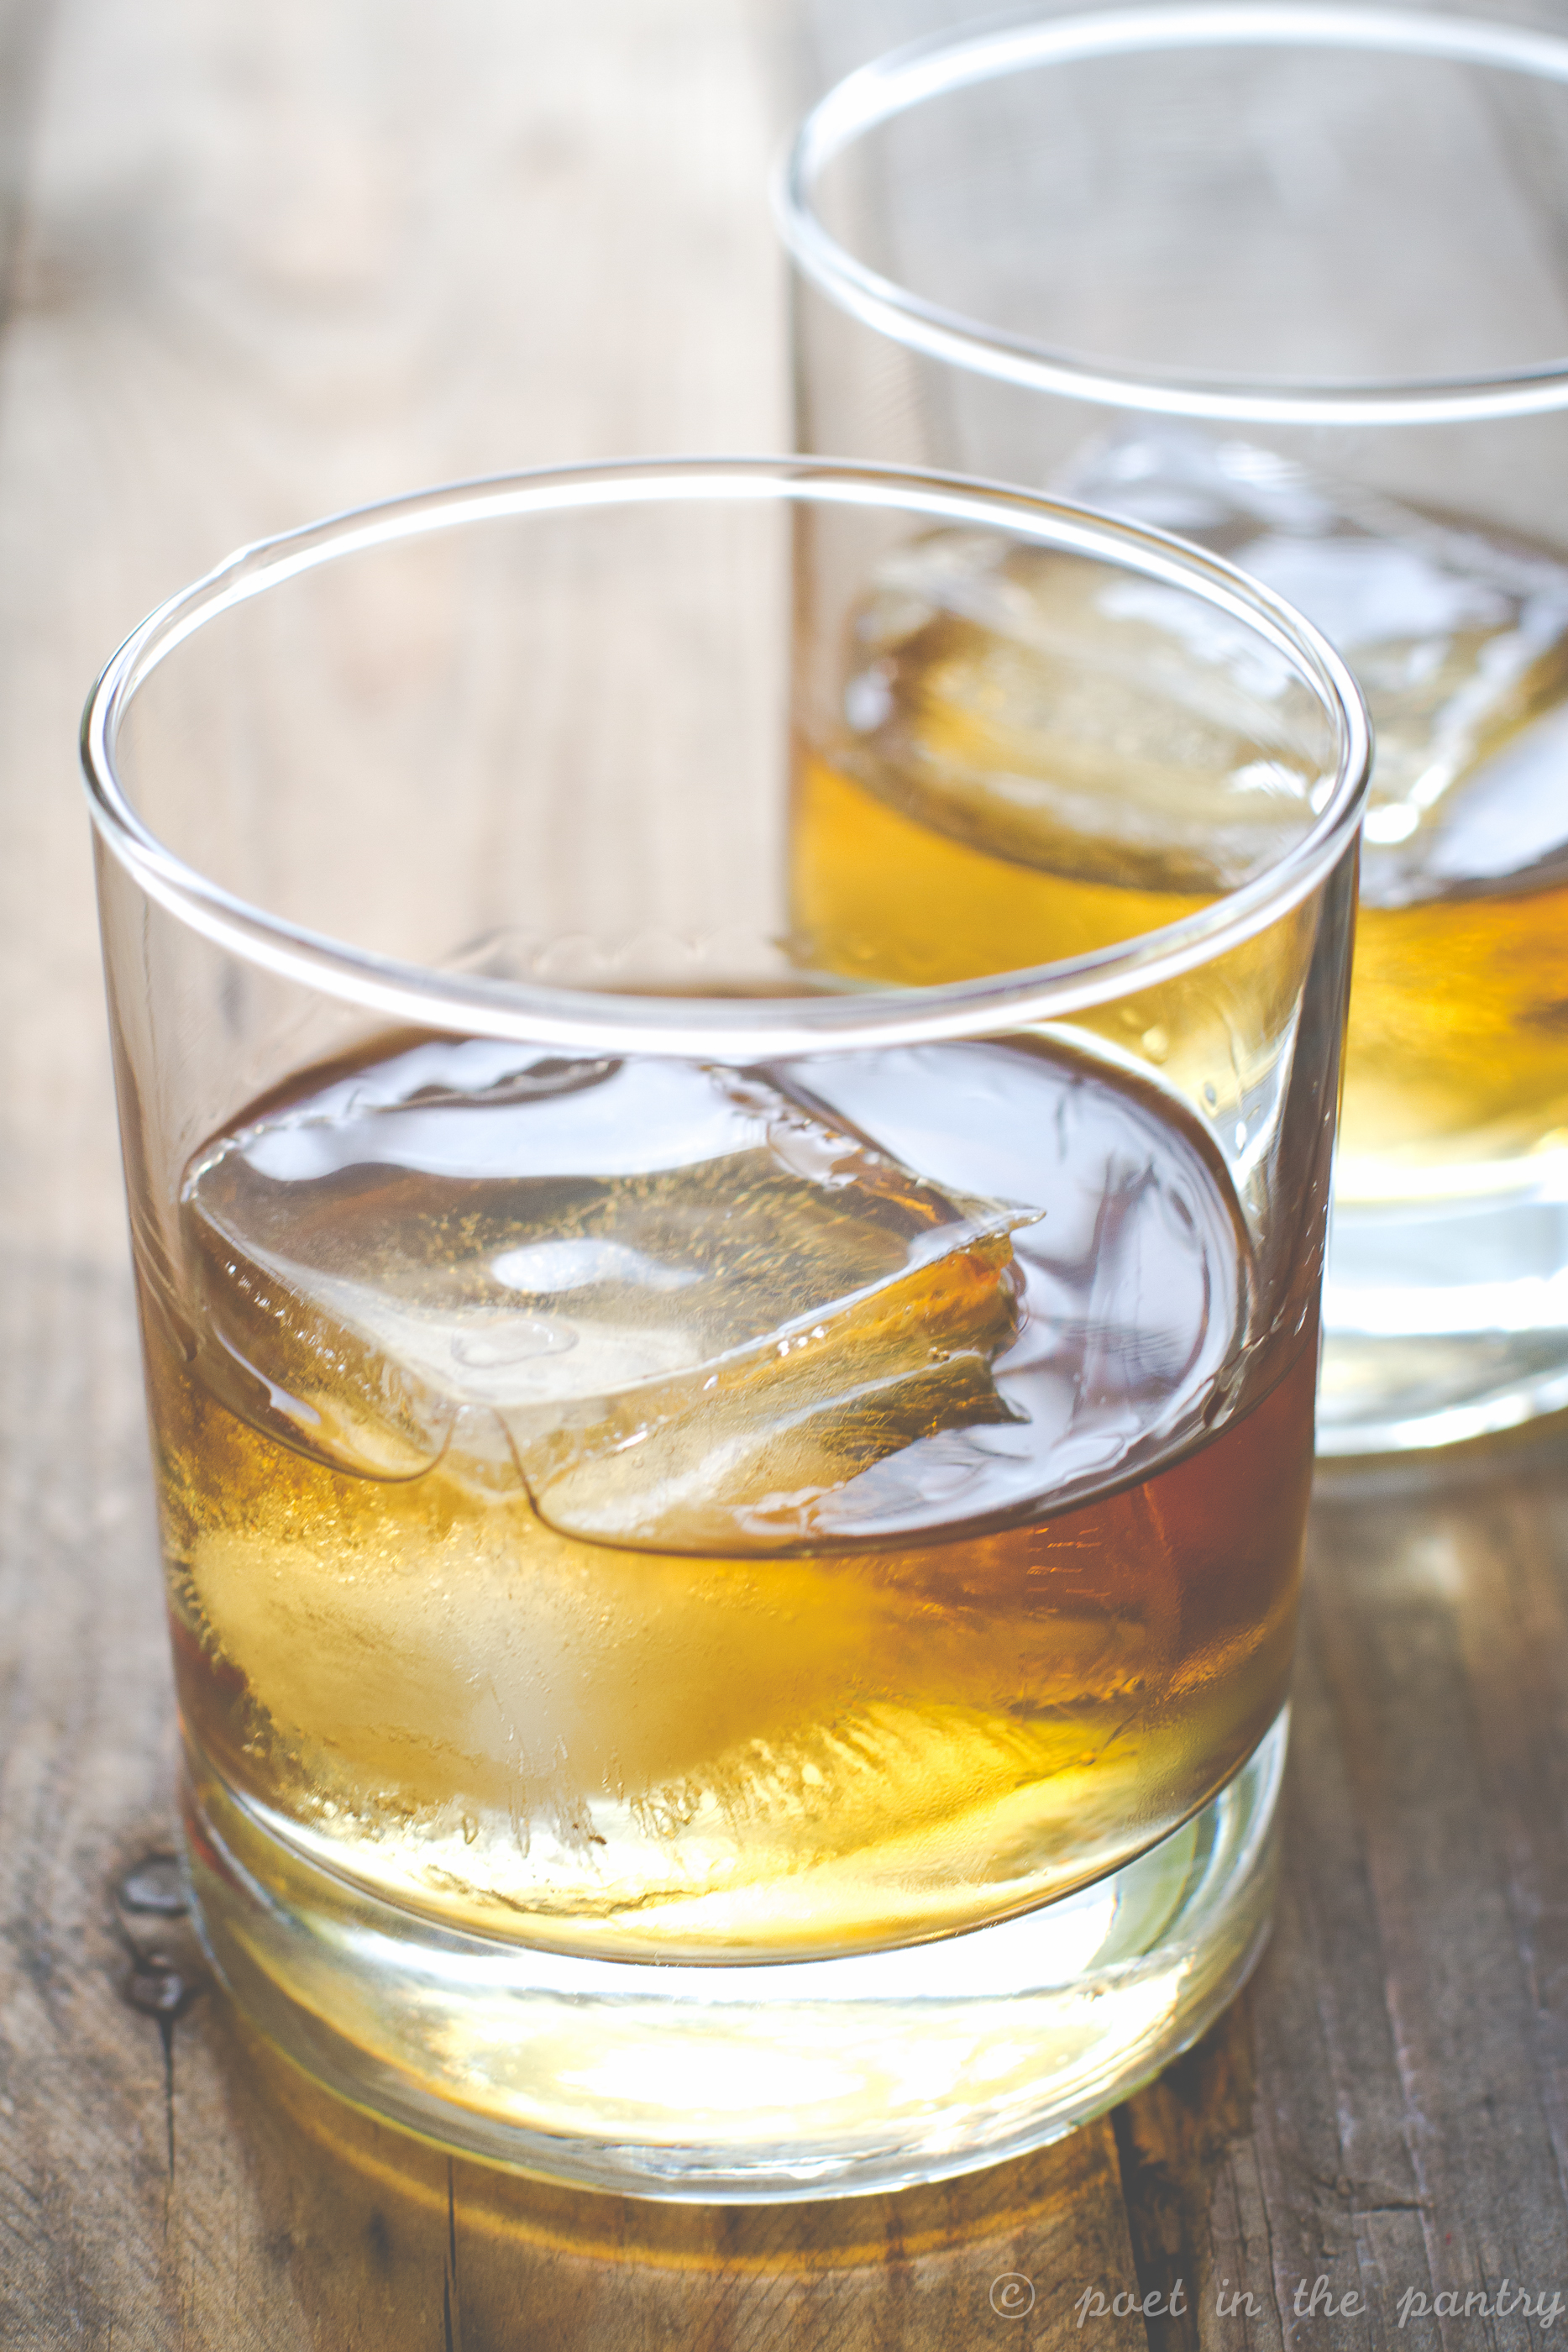 Saybrook Point Inn & Spa in Old Saybrook, CT, will host The Macallan Scotch Whisky Dinner at their Fresh Salt restaurant on Saturday, April 9, 2016